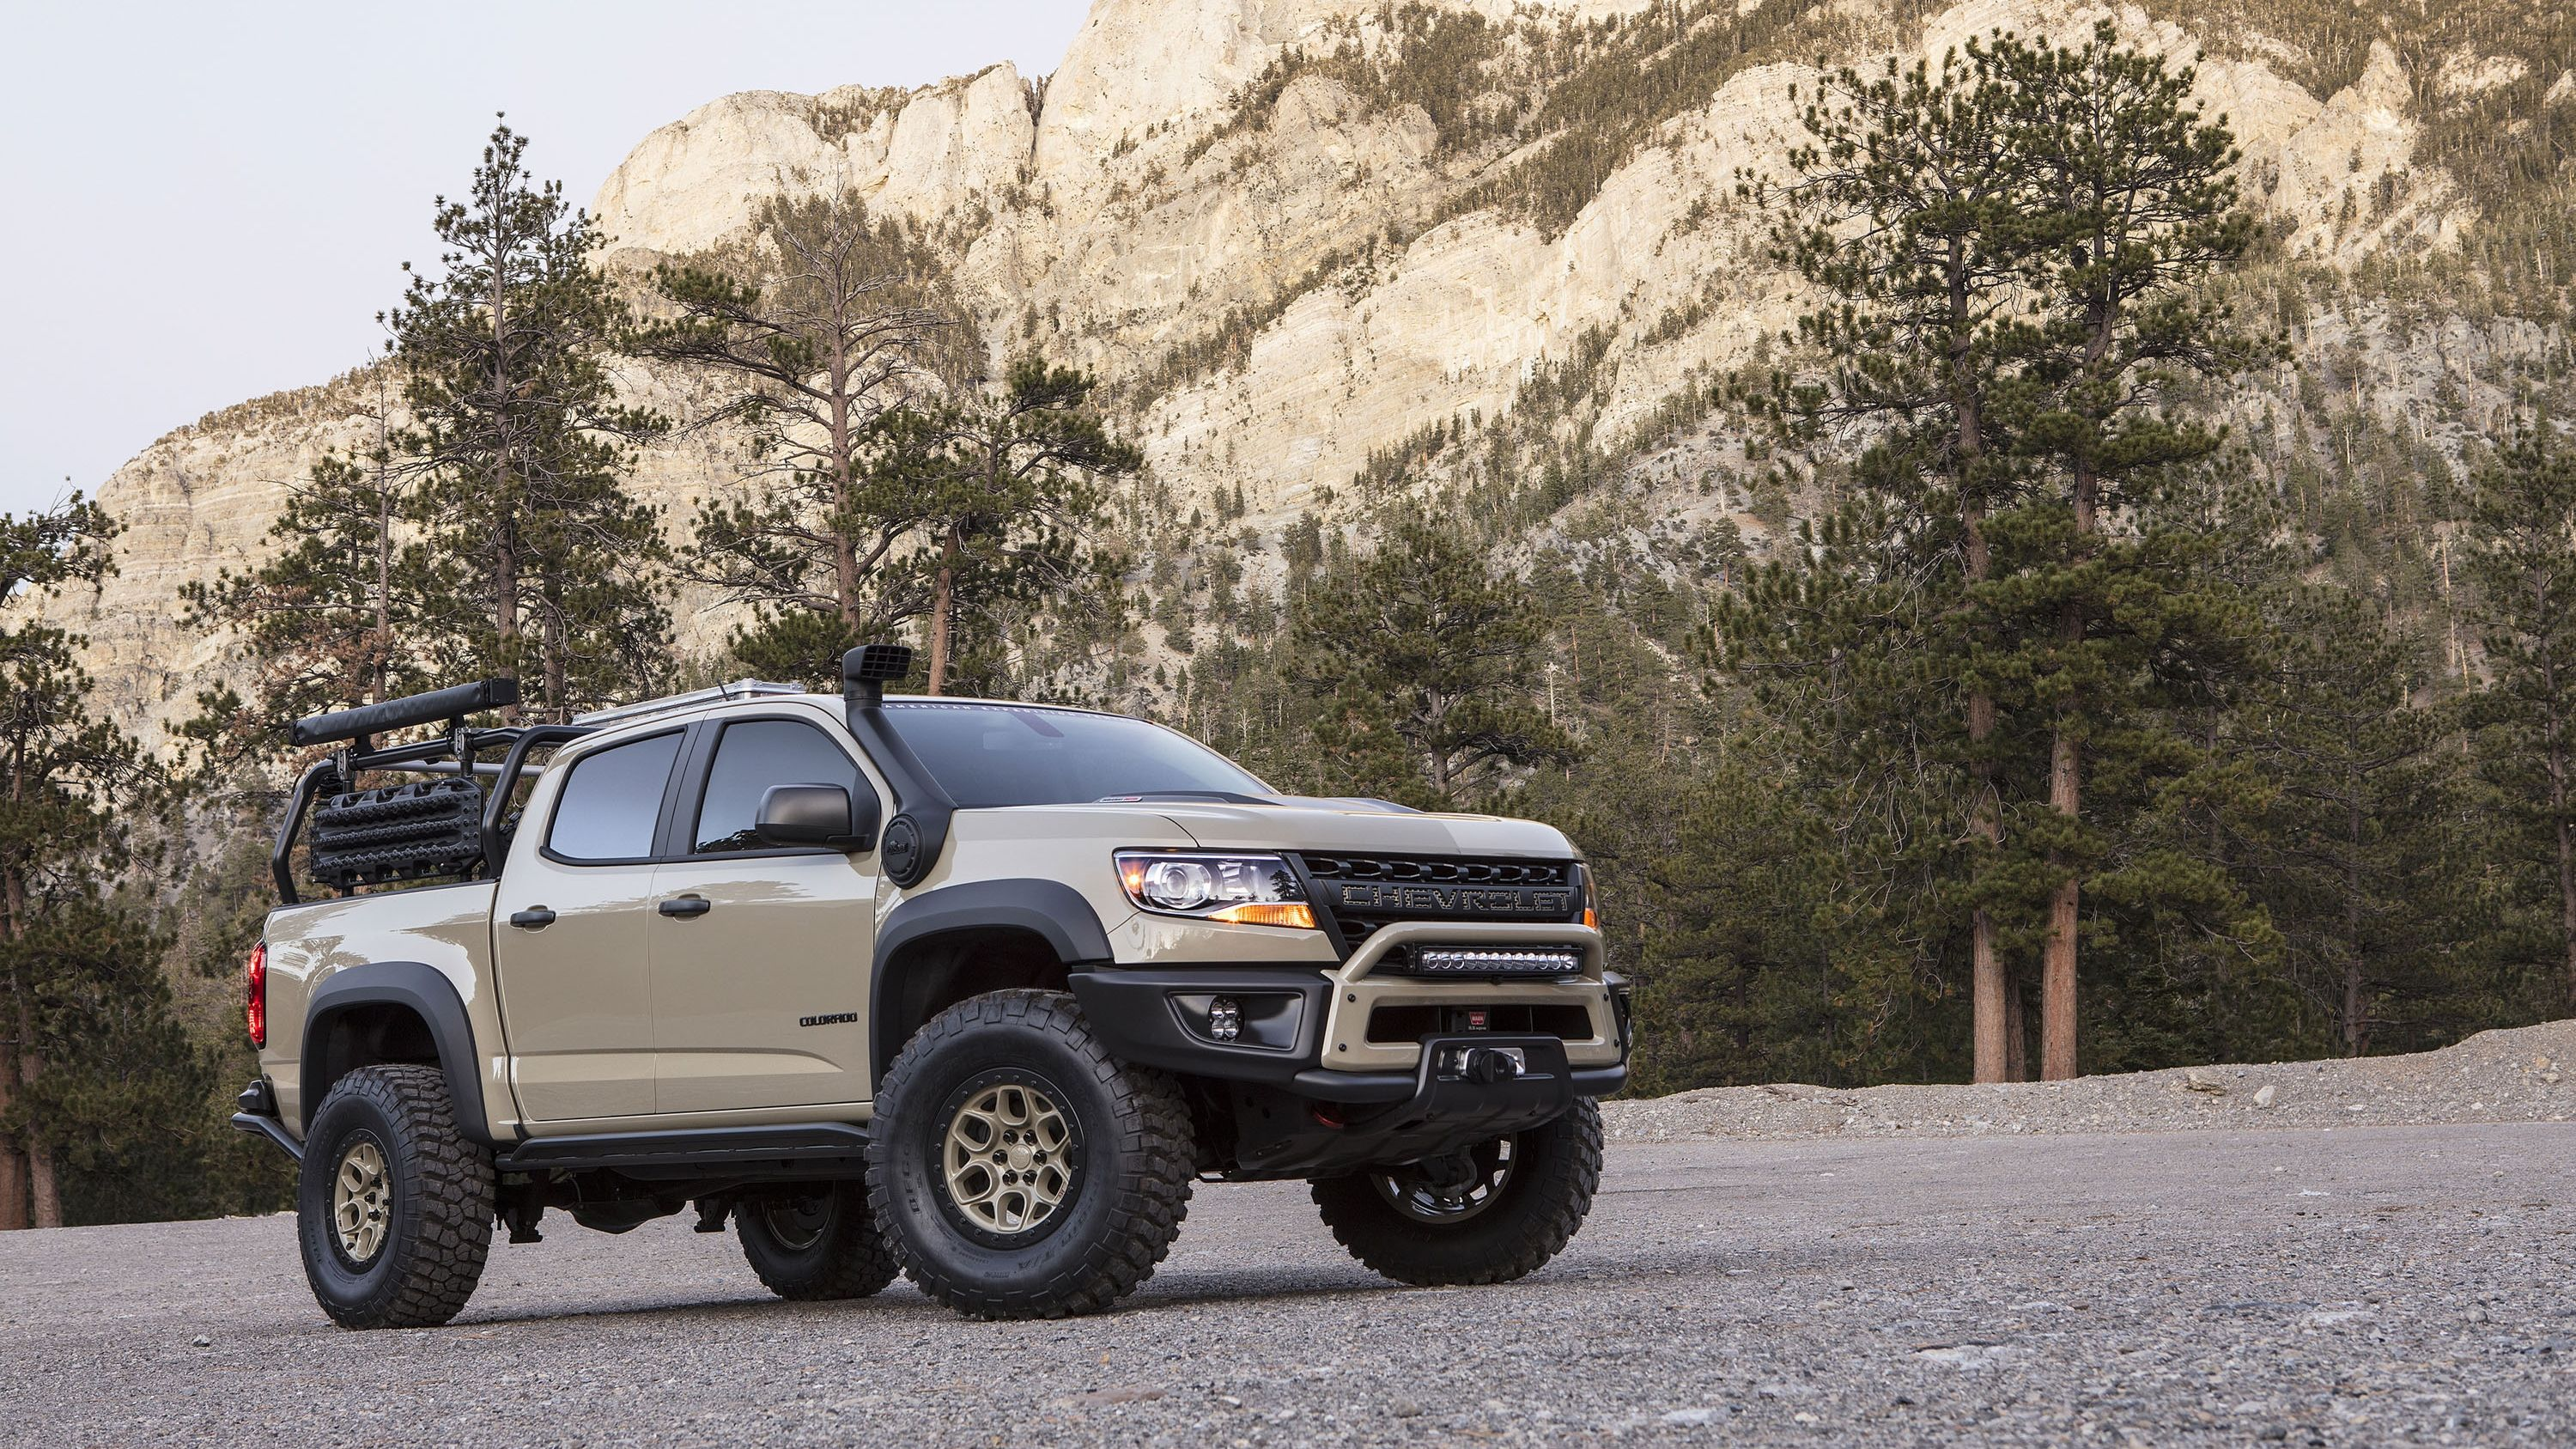 Chevy Is Pushing The Colorado Zr2 Aev Concept Into Production Will Probably Call It The Colorado Bison Chevrolet Colorado Overland Gear Chevy Colorado